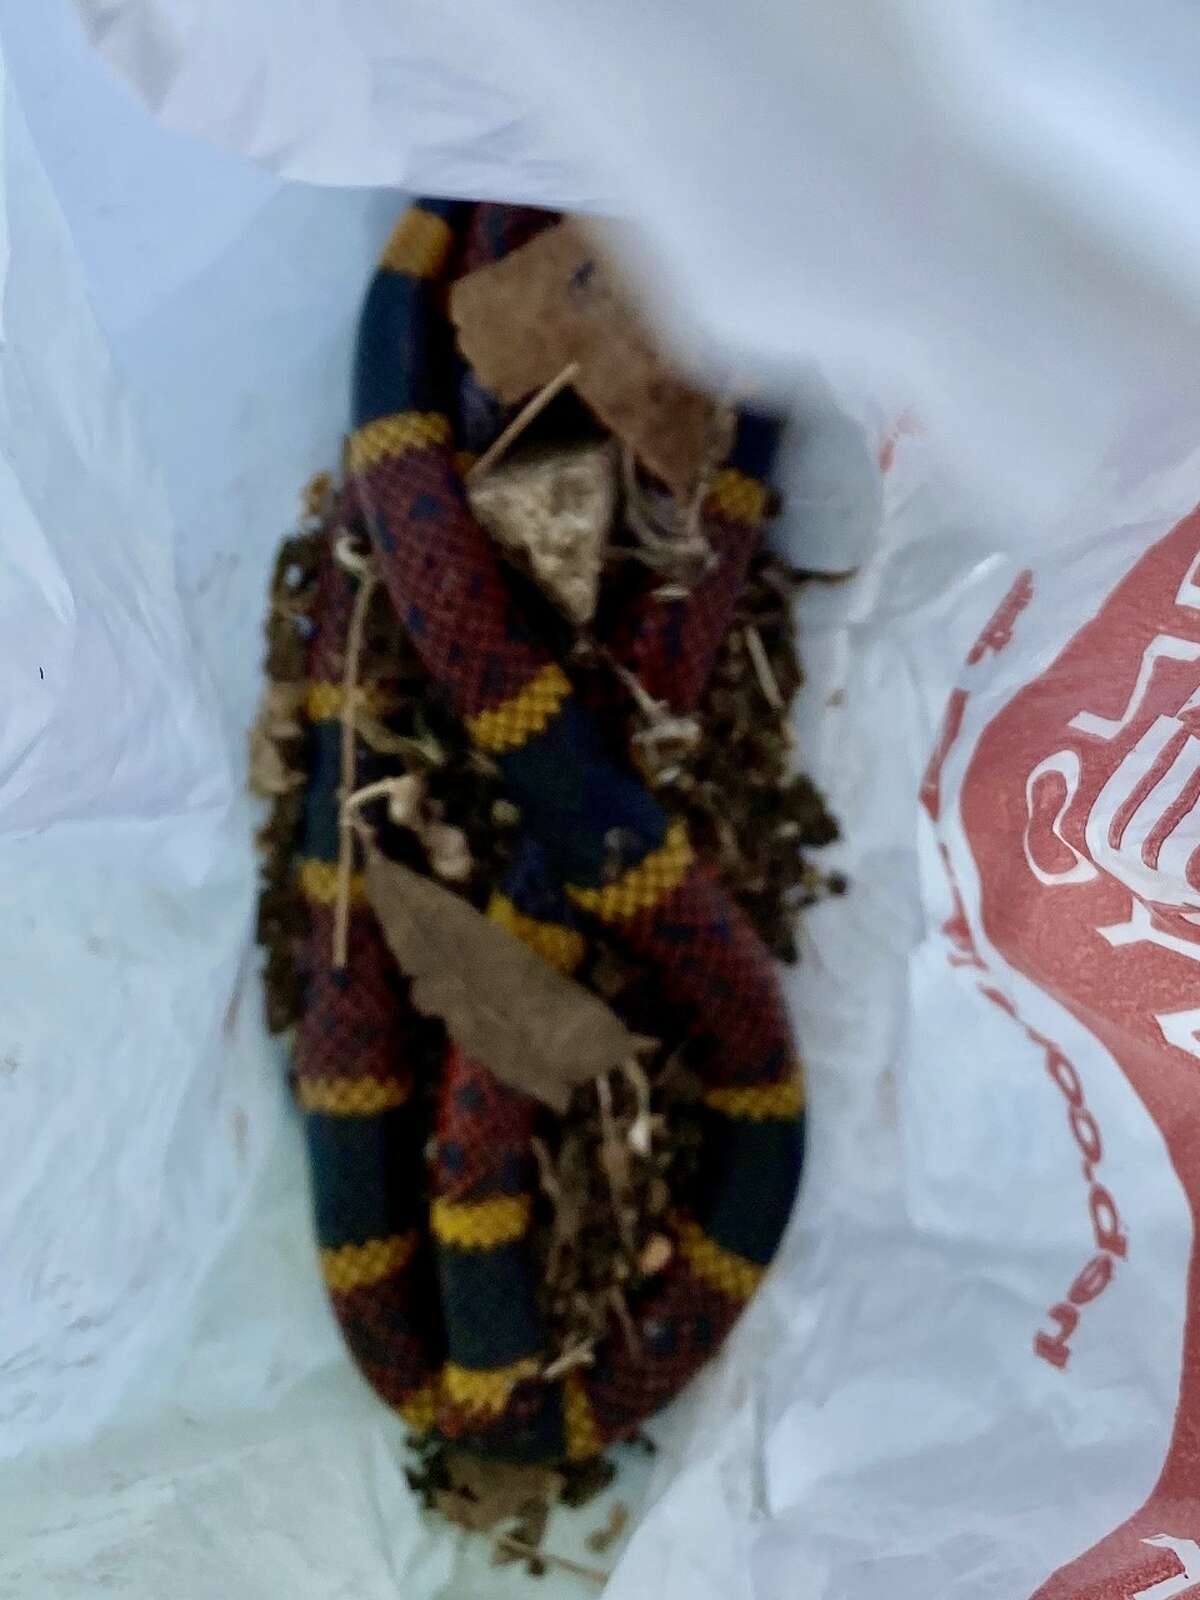 When Gloria St. Mary returned from a trip to the grocery store last Thursday, she noticed her dog named King Kong was playing with something in his mouth. After stepping closer, she realized it was a coral snake and screamed. Inside the bag in the photo, is the dead snake the dog had in his mouth.